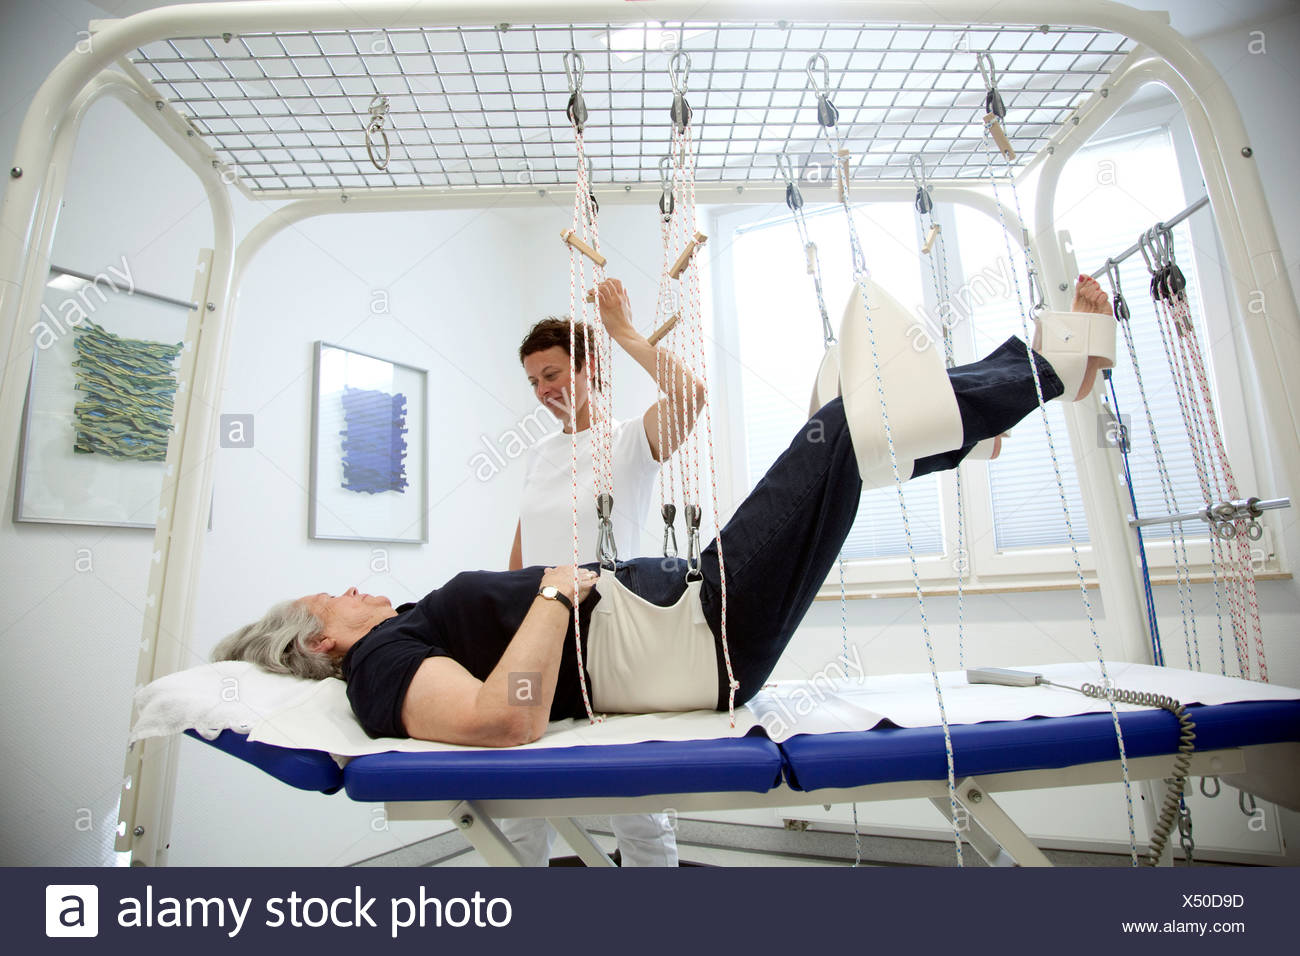 Essen, Germany, on the therapy loop table - Stock Image